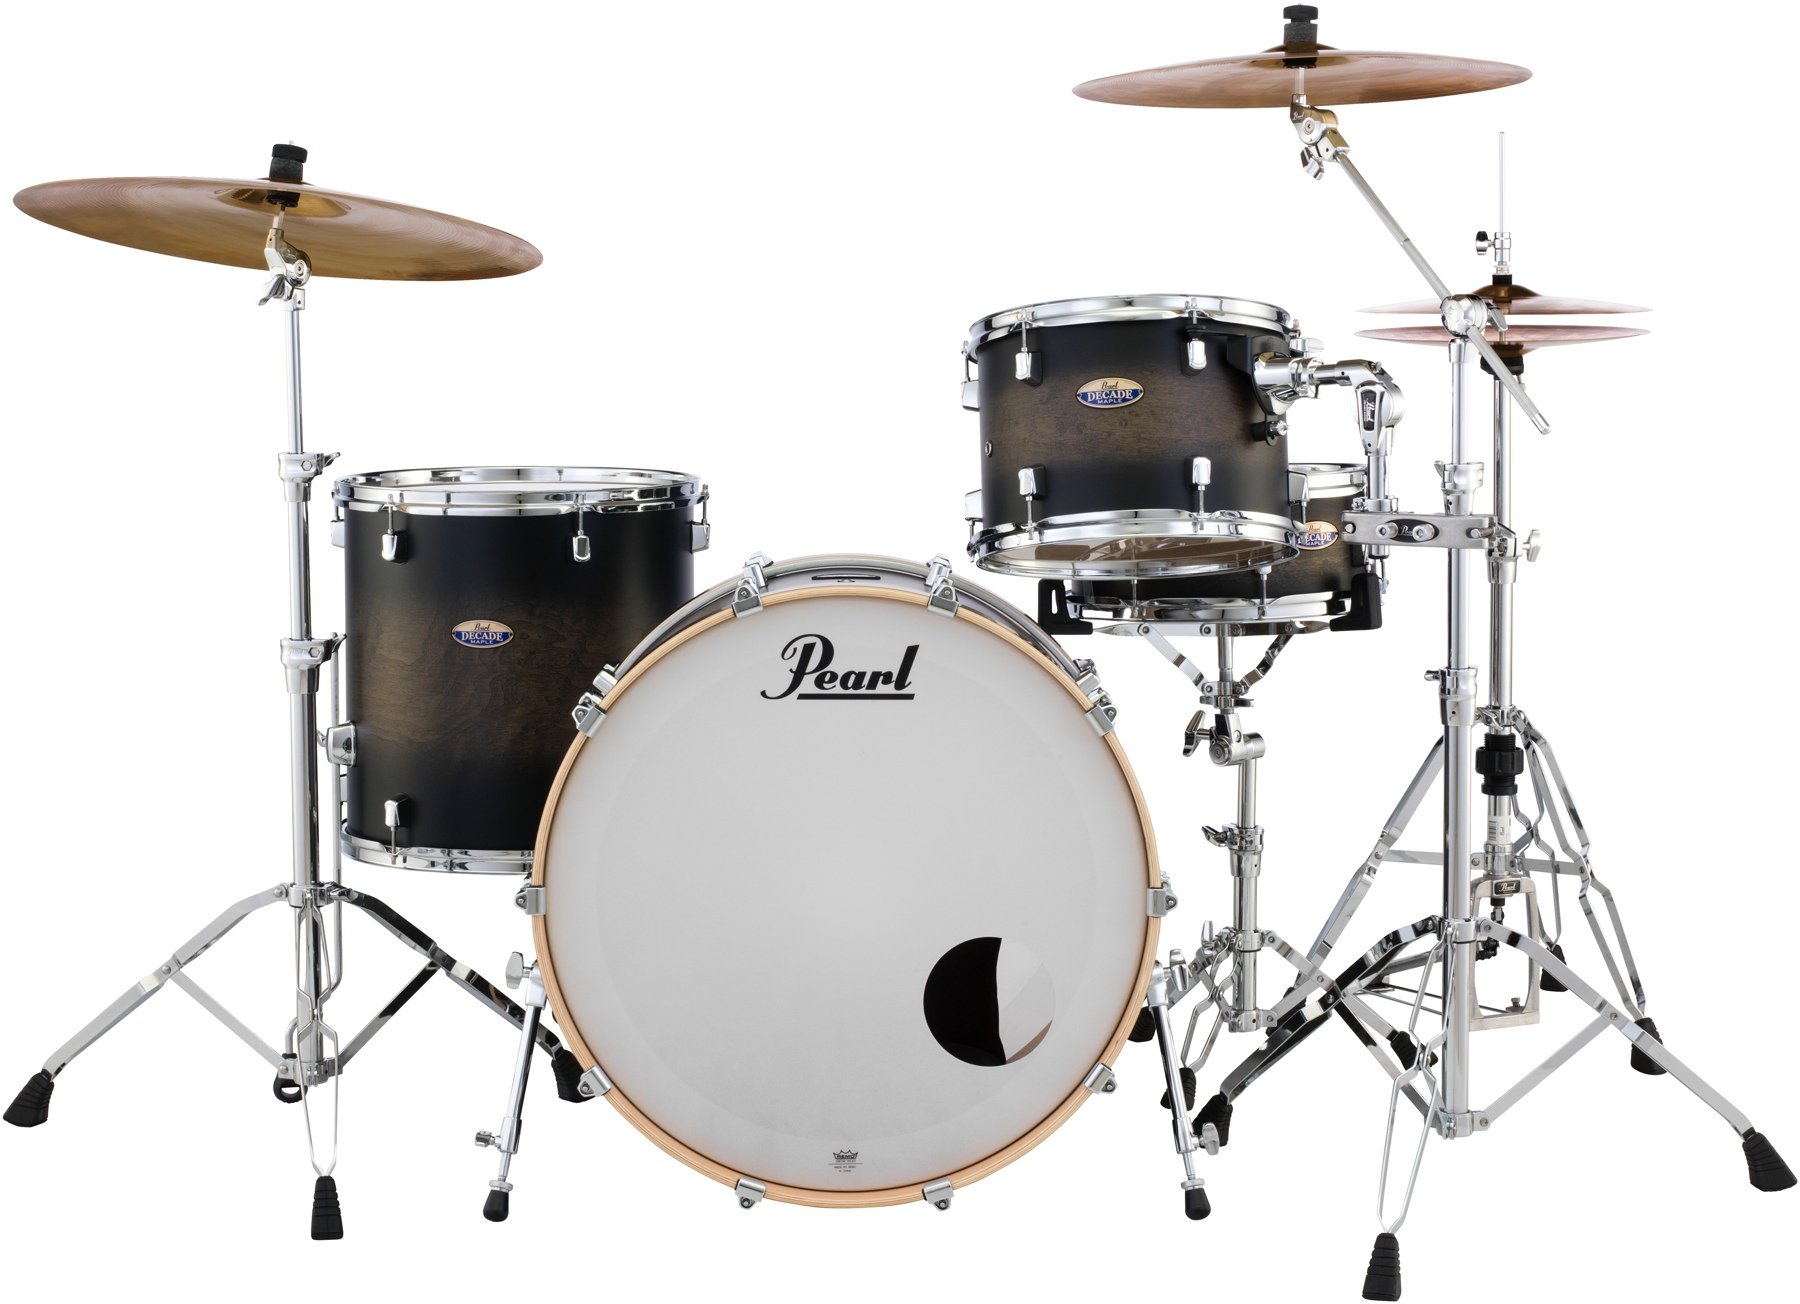 Pearl Decade Maple Dmp943xp C 3 Piece Shell Pack Satin Black Burst Sweetwater